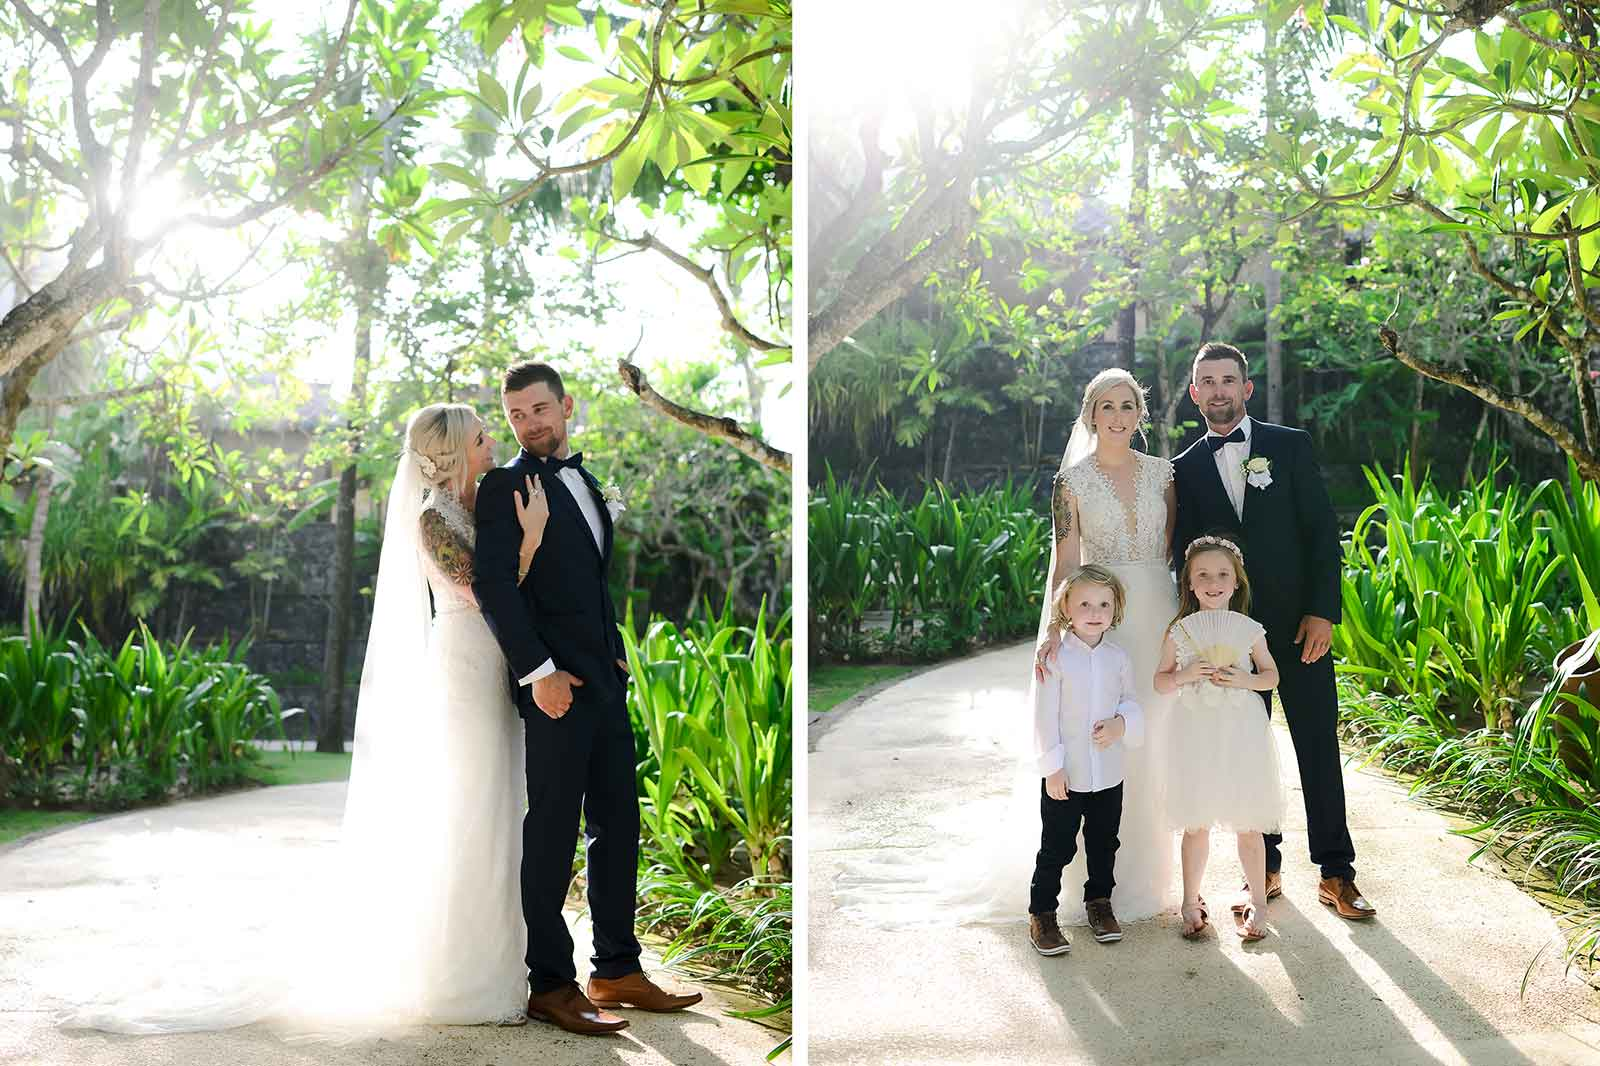 Conrad-Bali-Kobhi-Robert-wedding-02